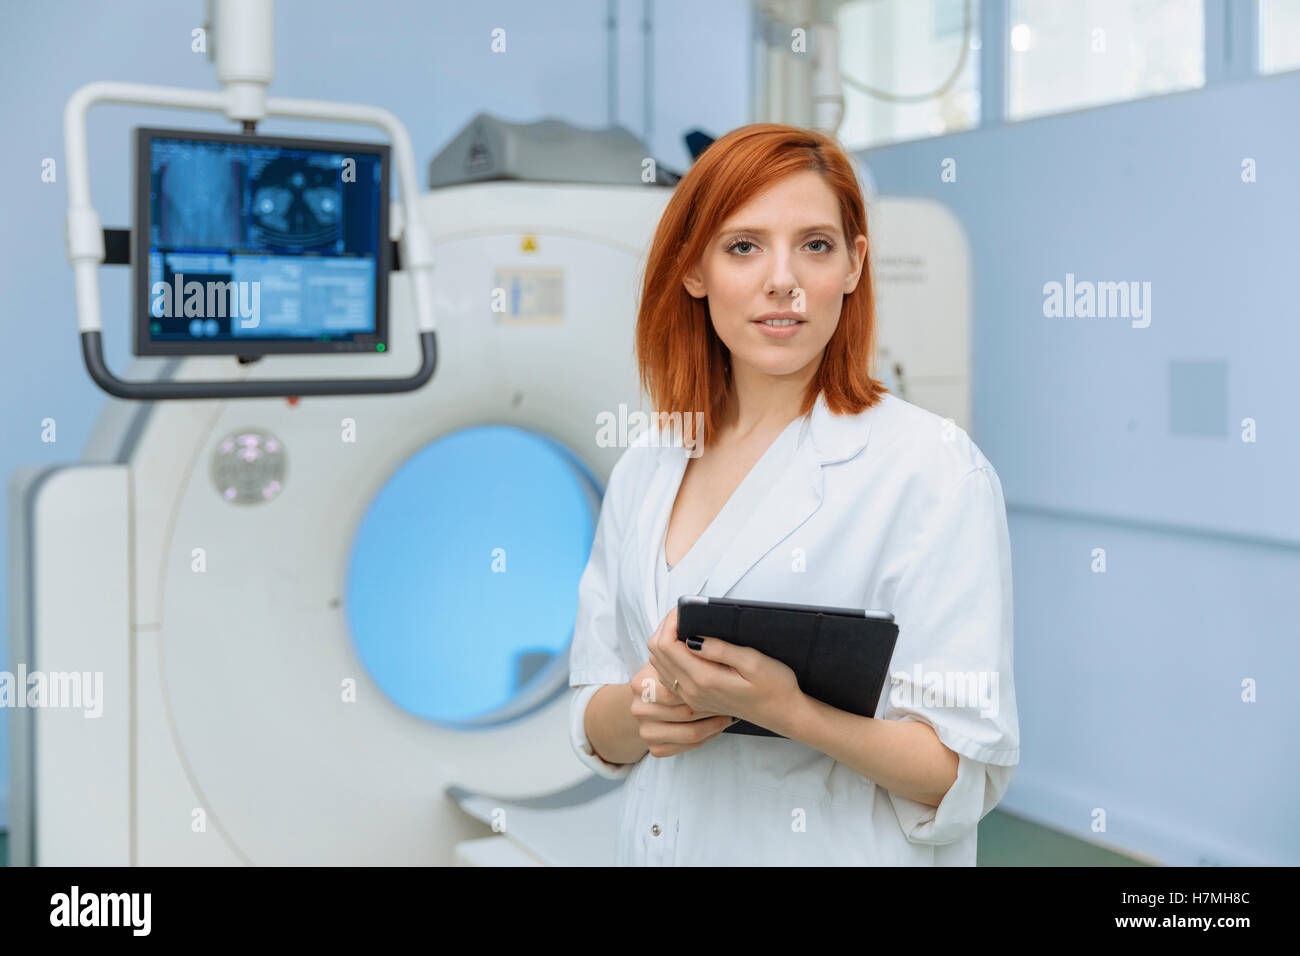 Portrait of a woman doctor in the scanner room - Stock Image